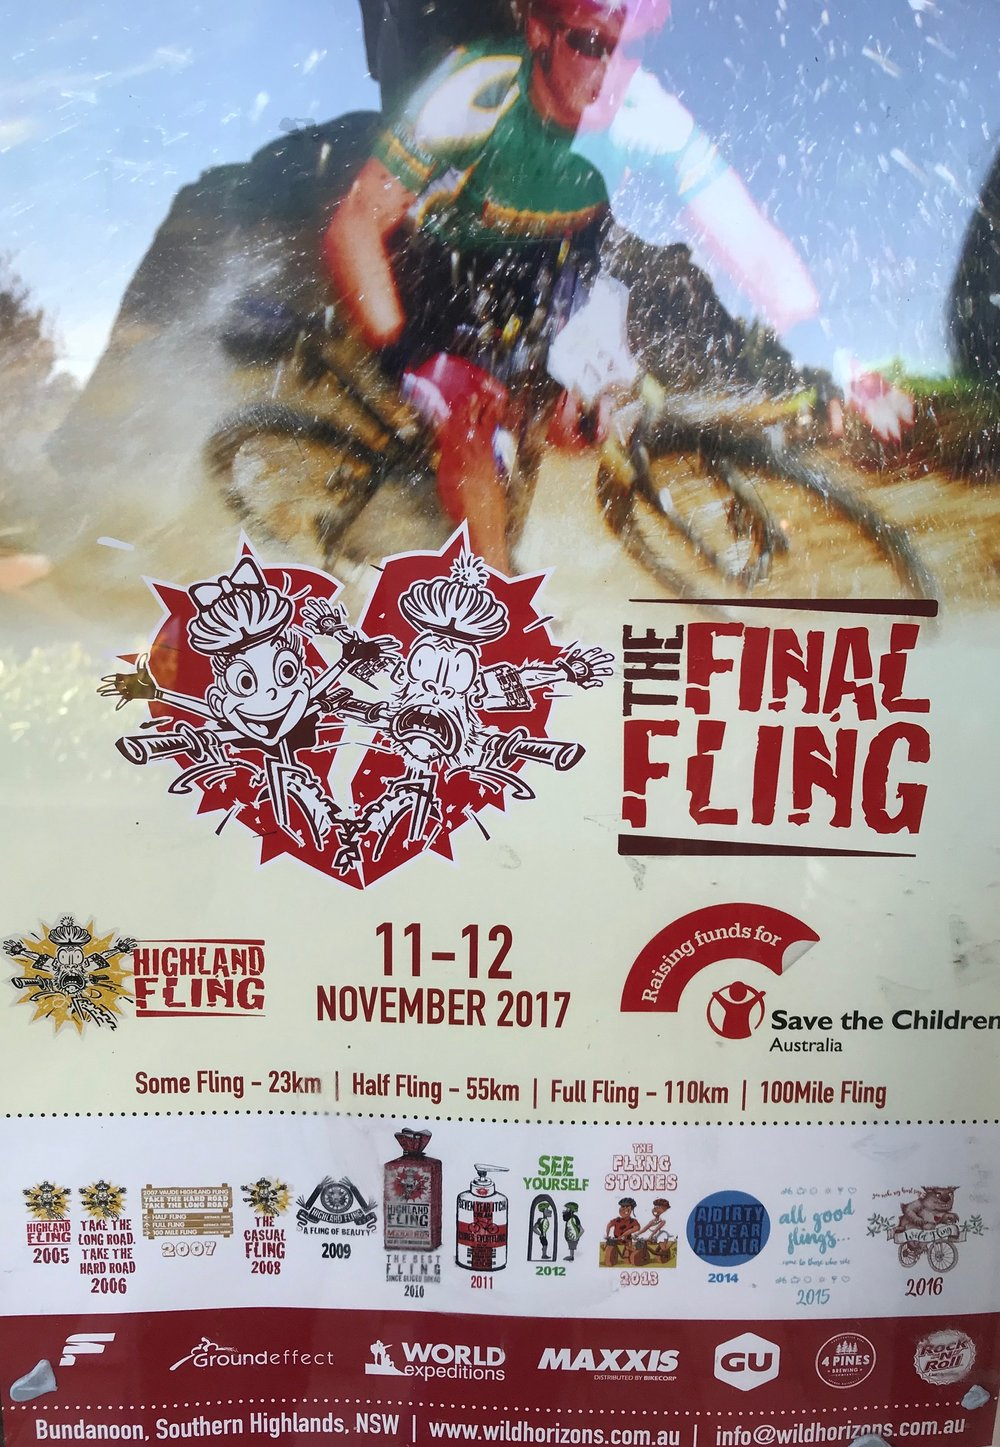 The MTB Highland Fling has its final (yes, final !) romp through the Bundanoon region over 11-12 November